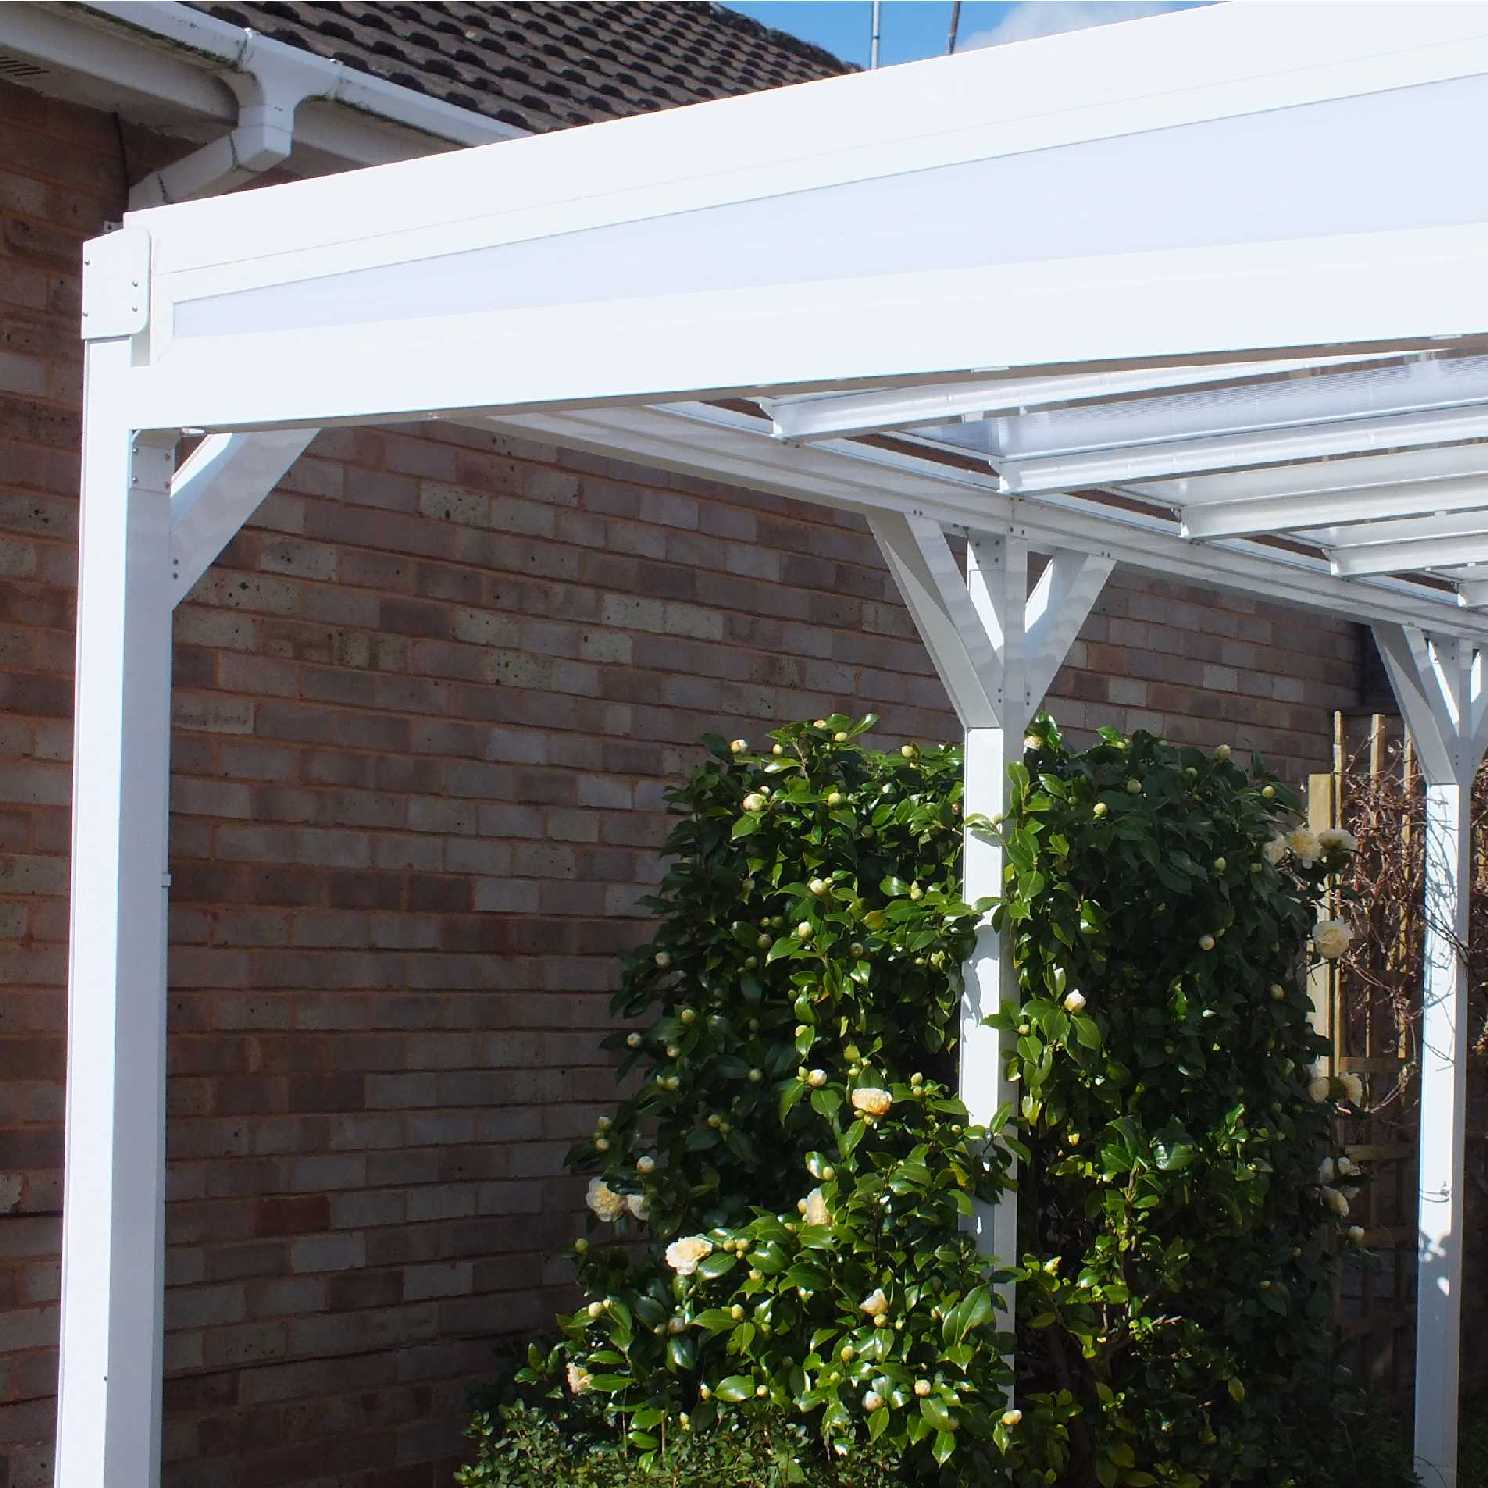 Omega Smart Lean-To Canopy with 16mm Polycarbonate Glazing - 2.1m (W) x 2.5m (P), (2) Supporting Posts from Omega Build